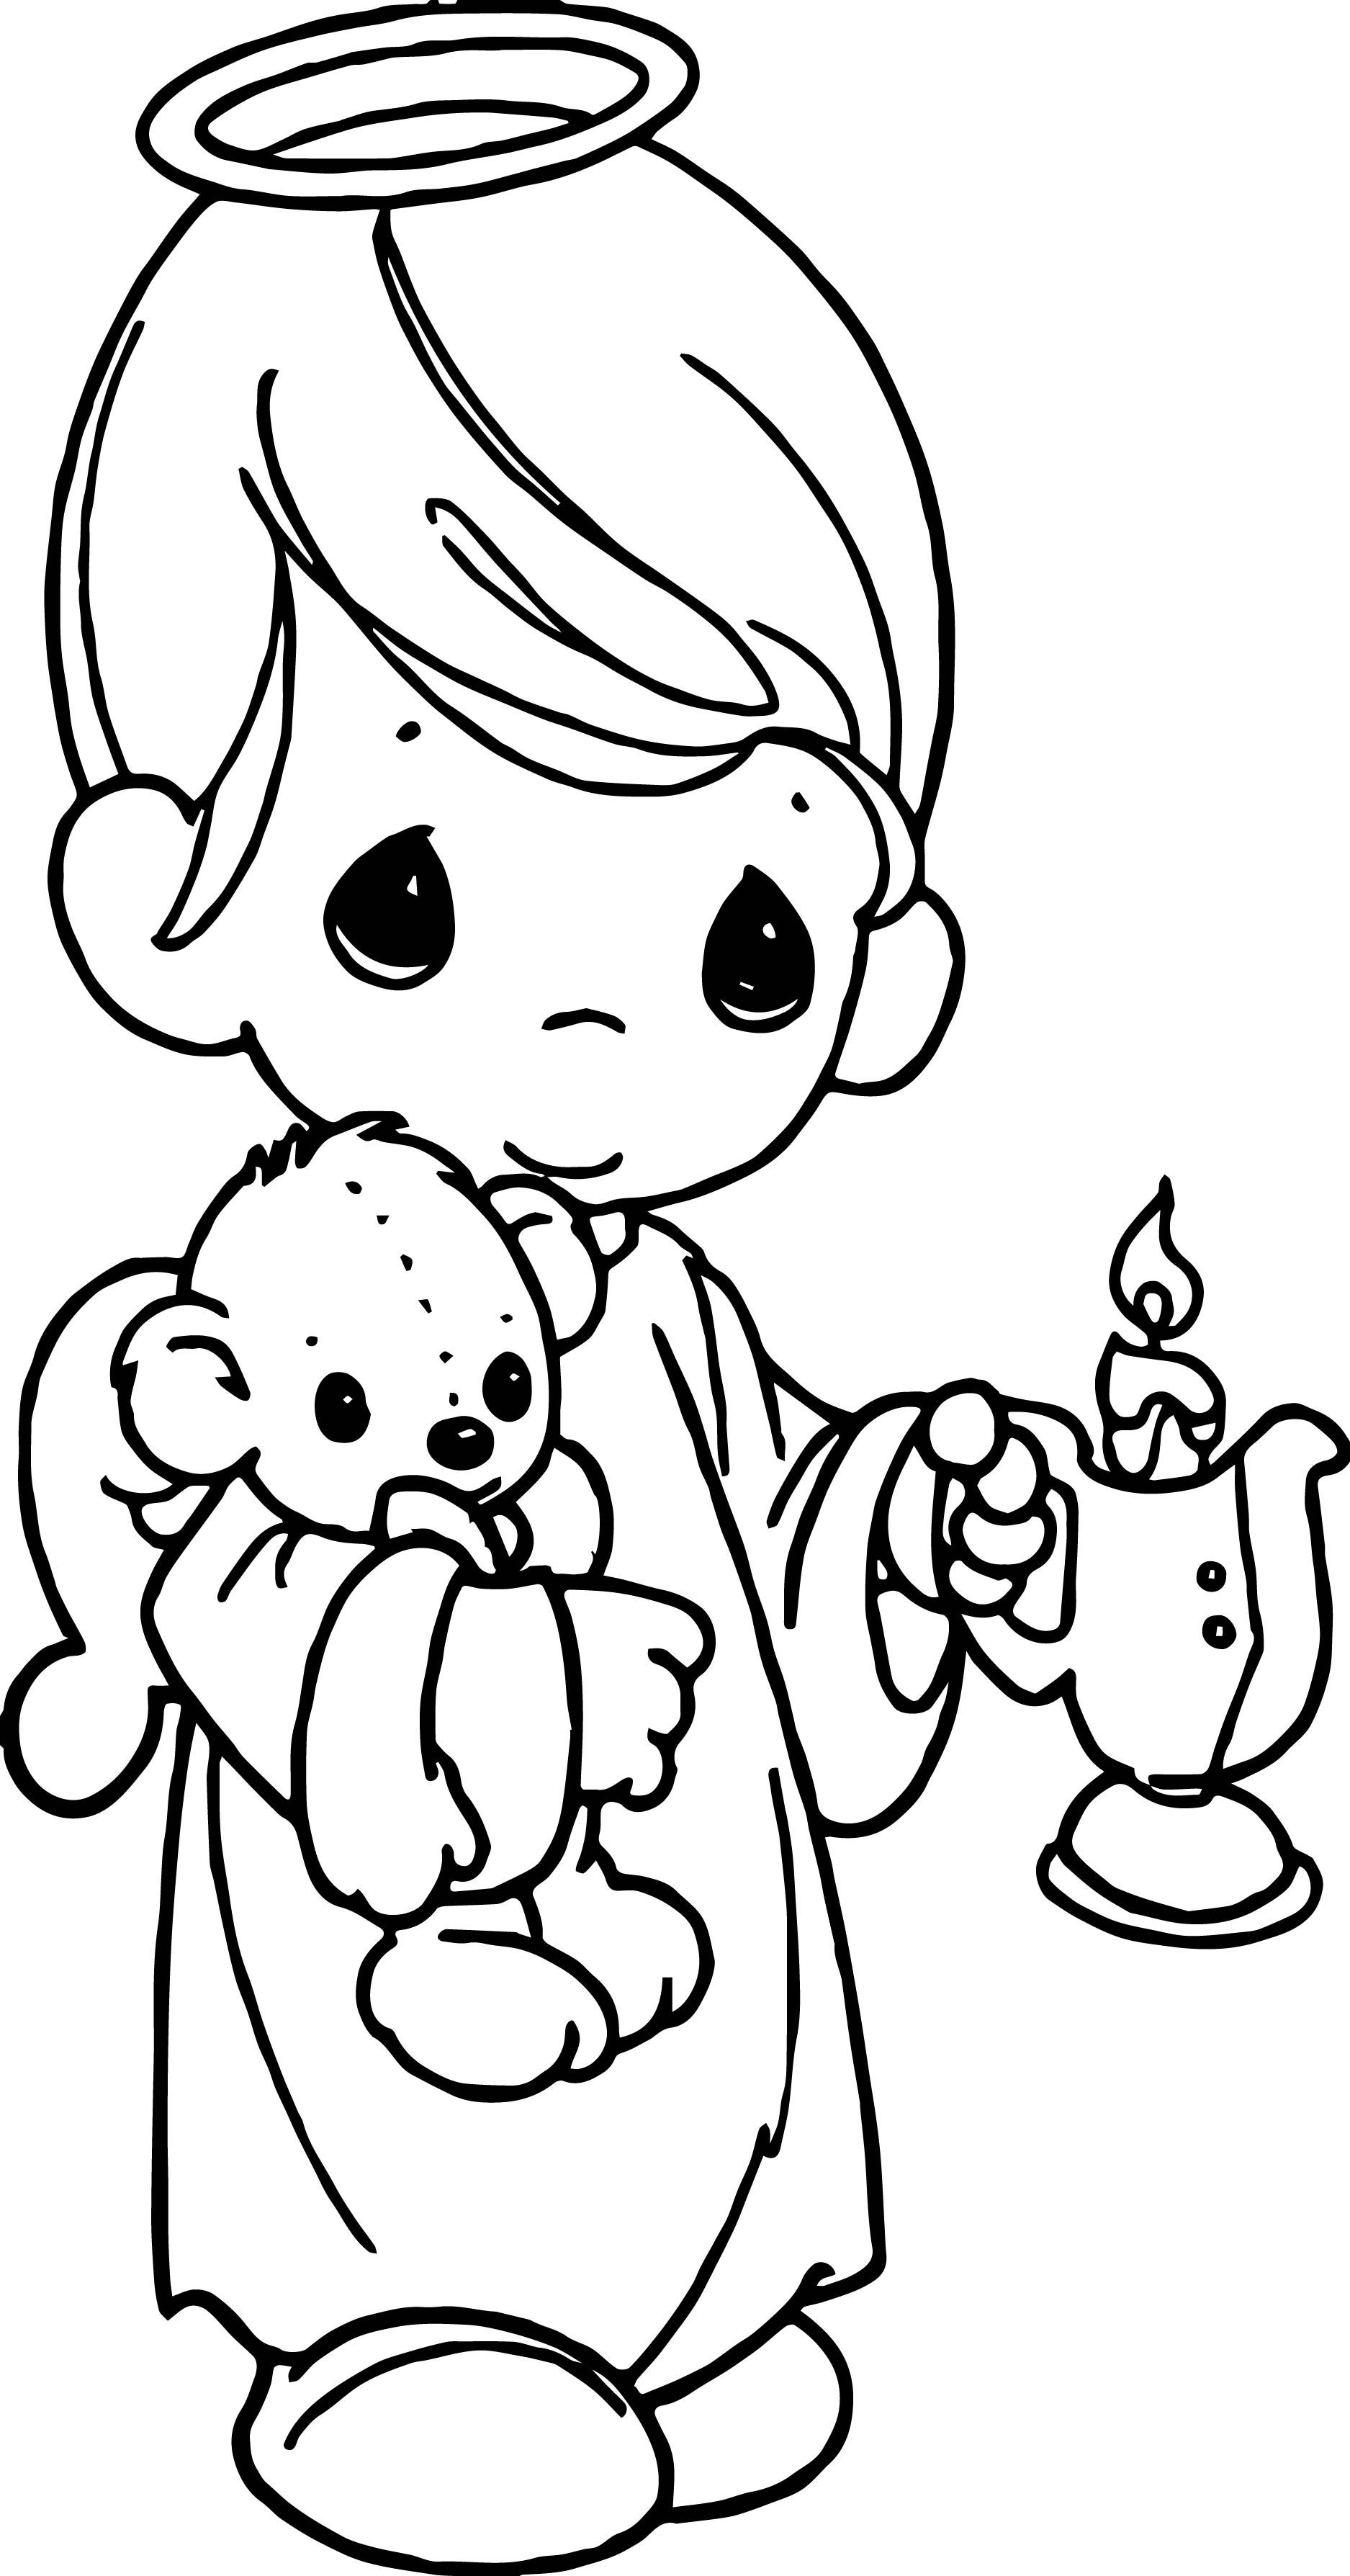 Precious Moments Coloring Page 08 26